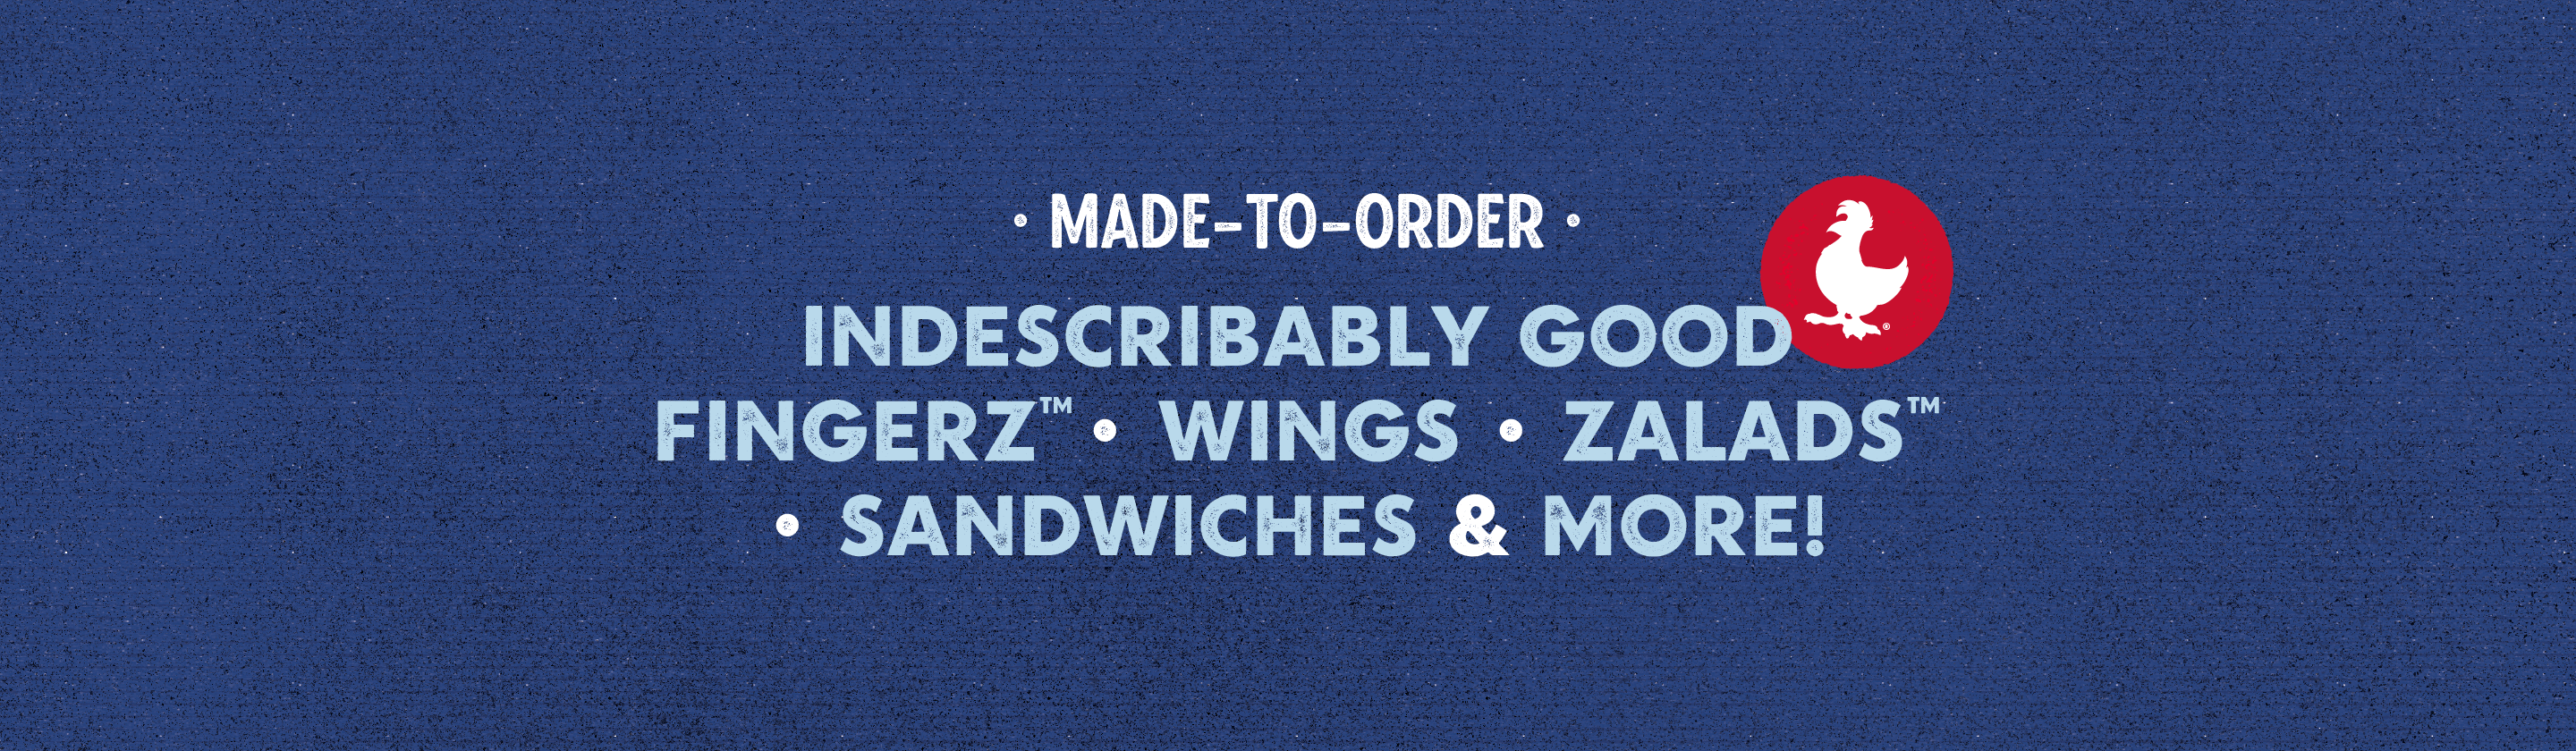 Indescribably good fingerz, wings, zalads, sandwiches & more!